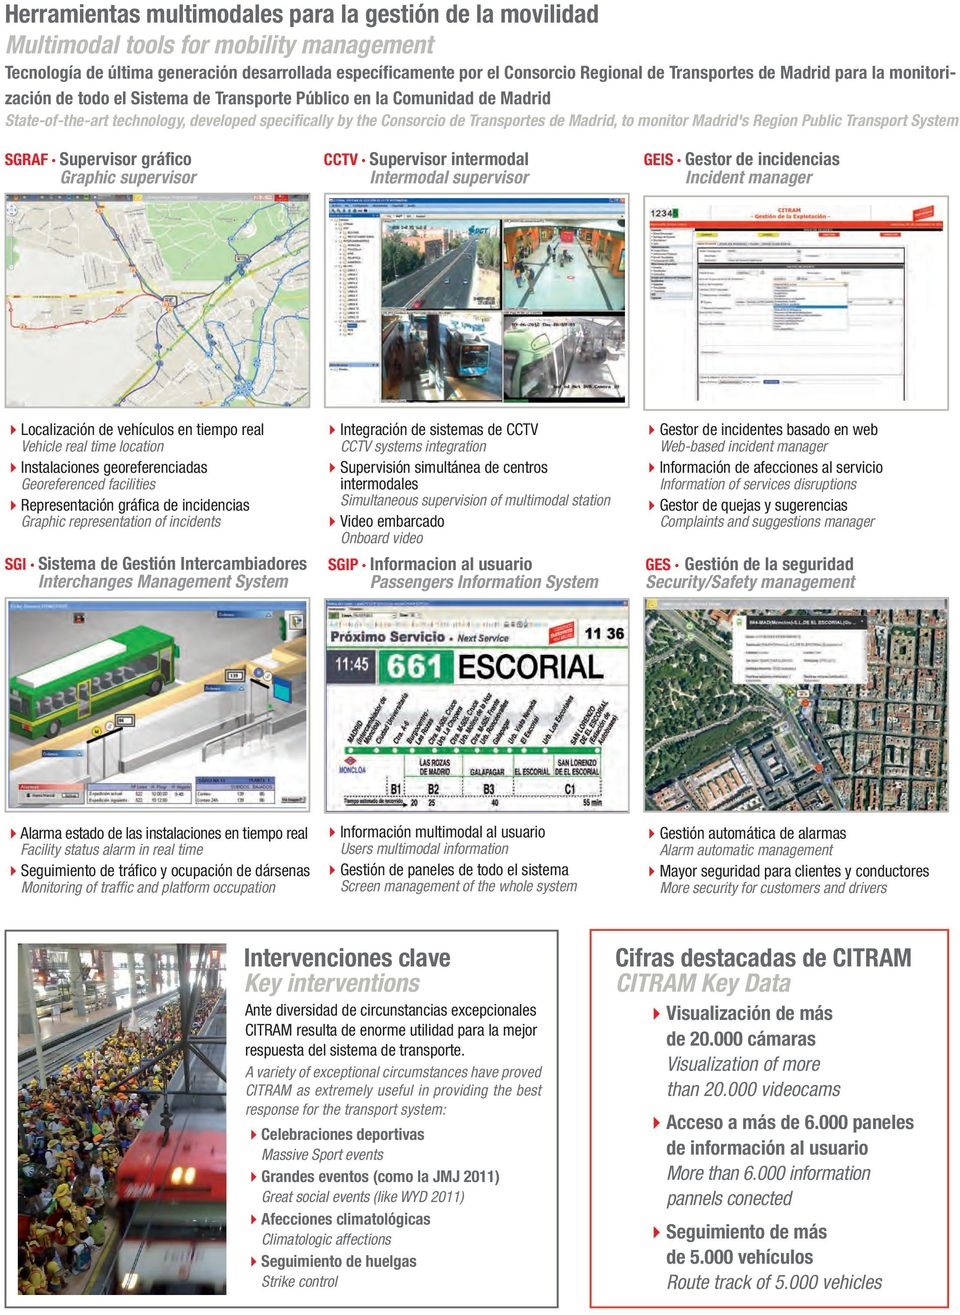 Madrid, to monitor Madrid's Region Public Transport System SGRAF Supervisor gráfico Graphic supervisor CCTV Supervisor intermodal Intermodal supervisor GEIS Gestor de incidencias Incident manager